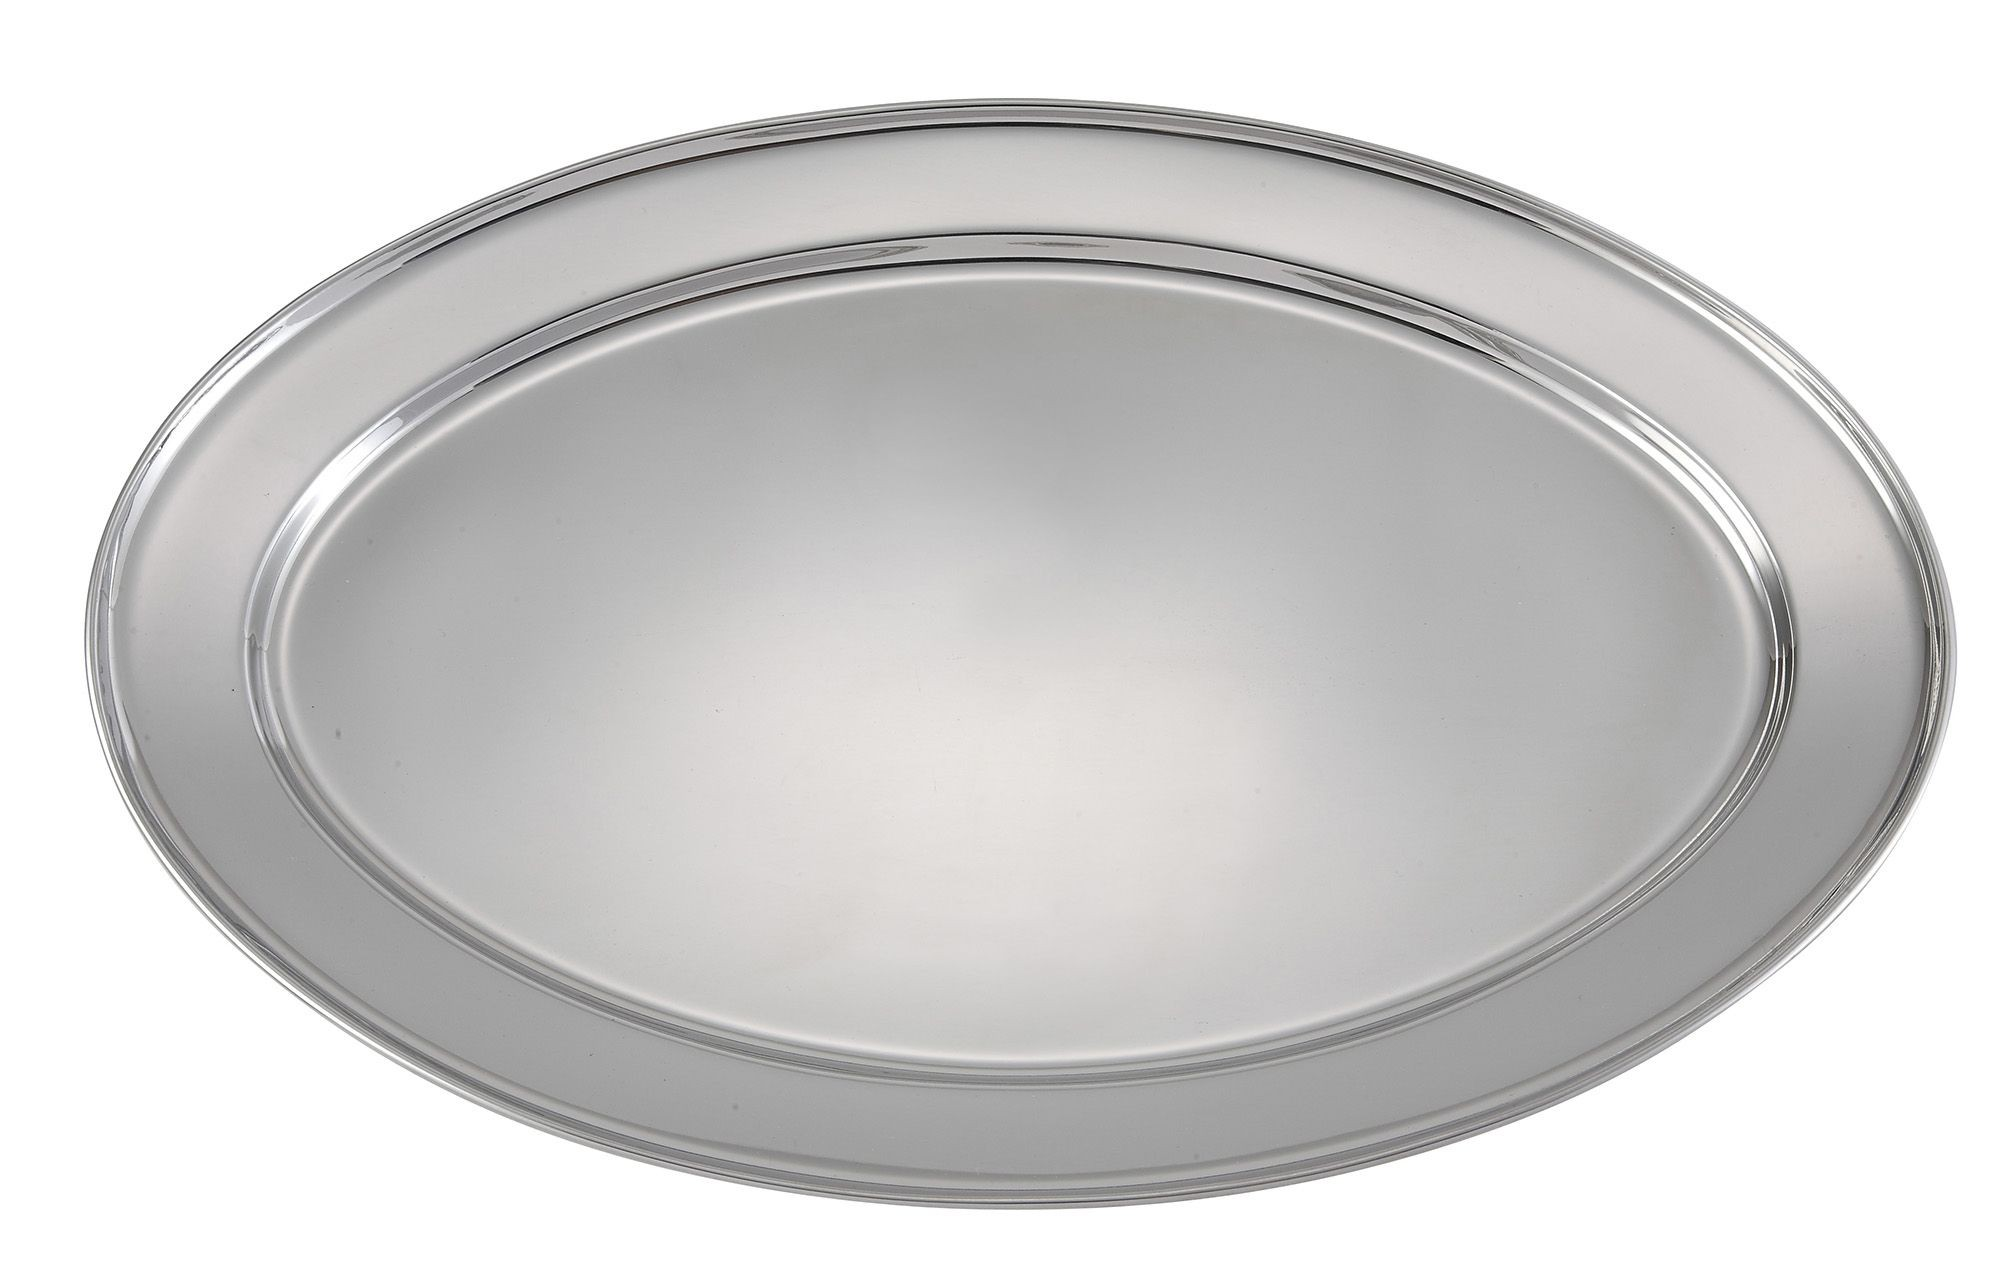 "Winco OPL-22 Stainless Steel Oval Platter - 21-3/4"" x 14-1/2"""